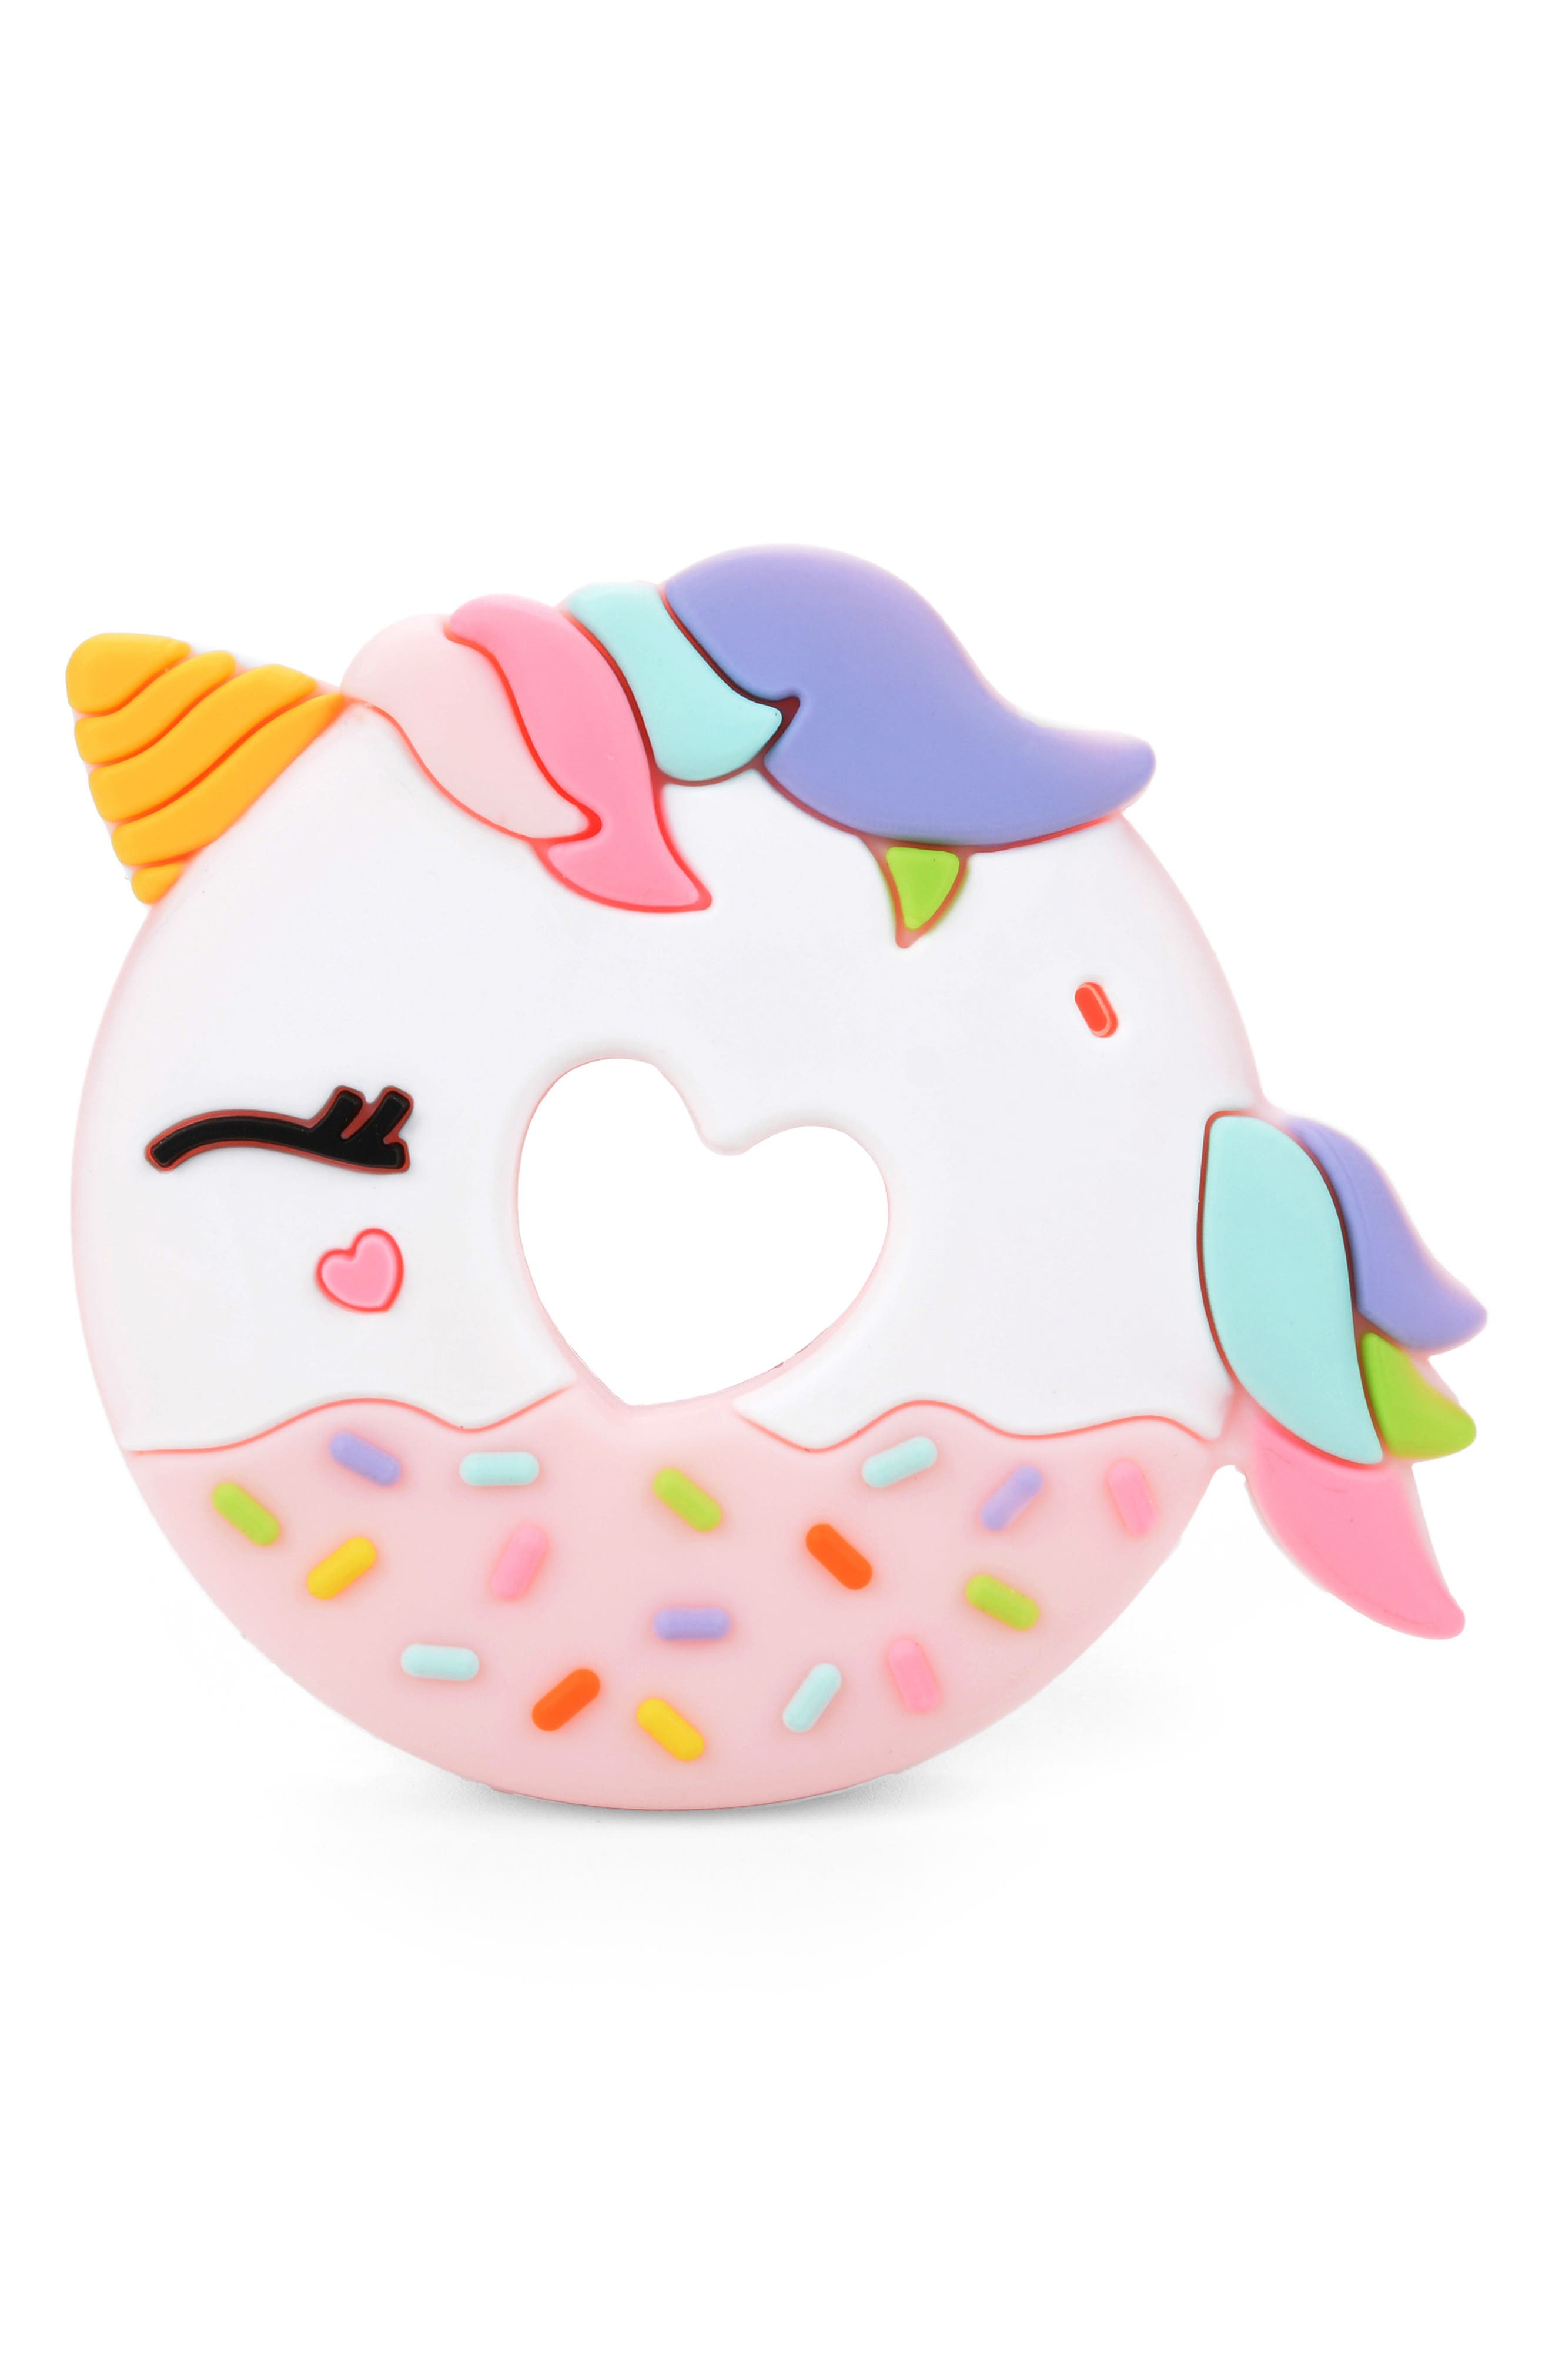 Unicorn Donut Teething Toy,                             Main thumbnail 1, color,                             Pink